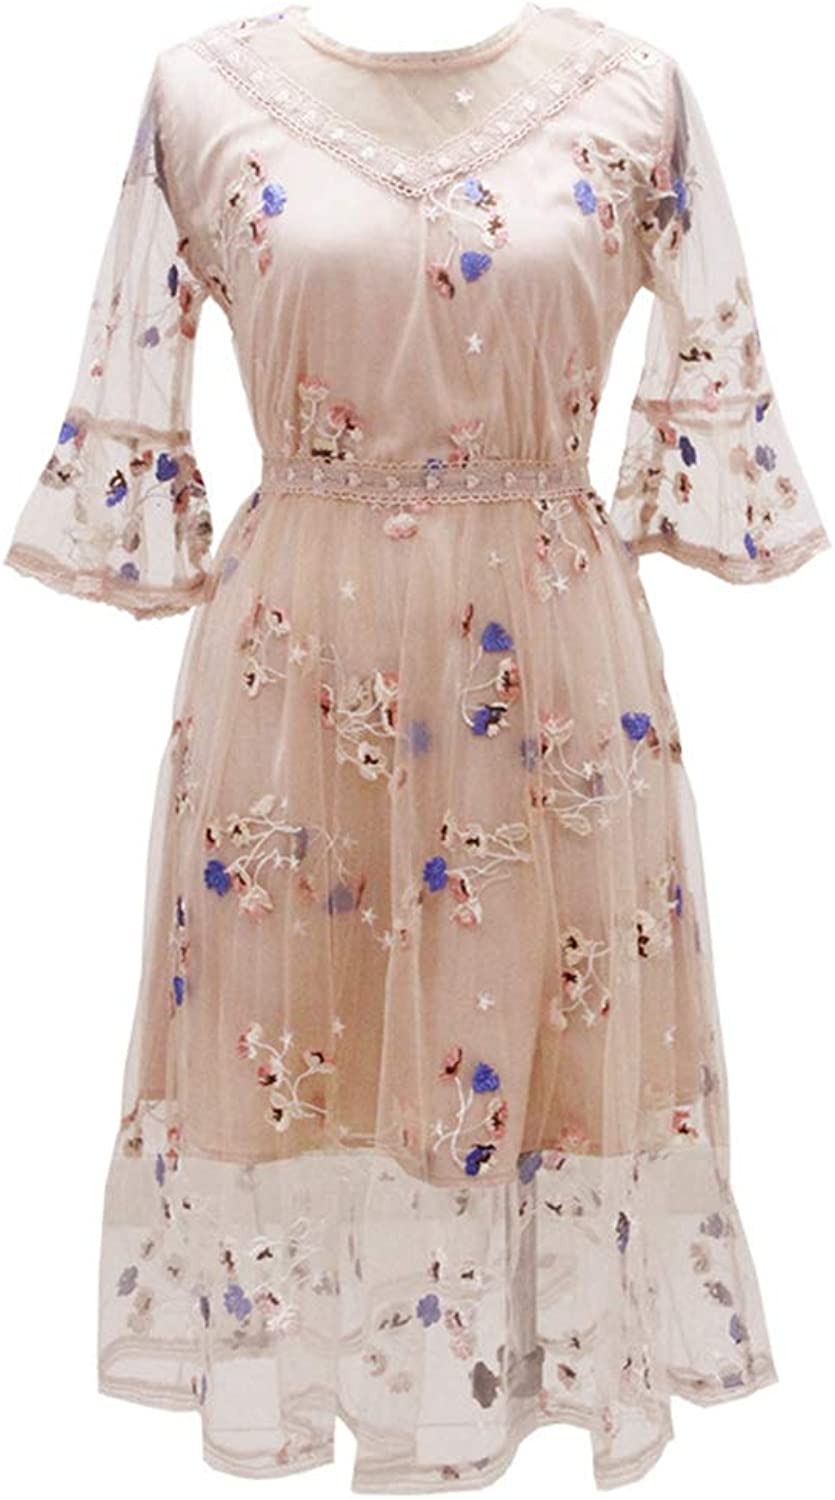 New Women's Round Neck Embroidered a Word Big Swing Skirt Temperament Lady mesh Dress Apricot